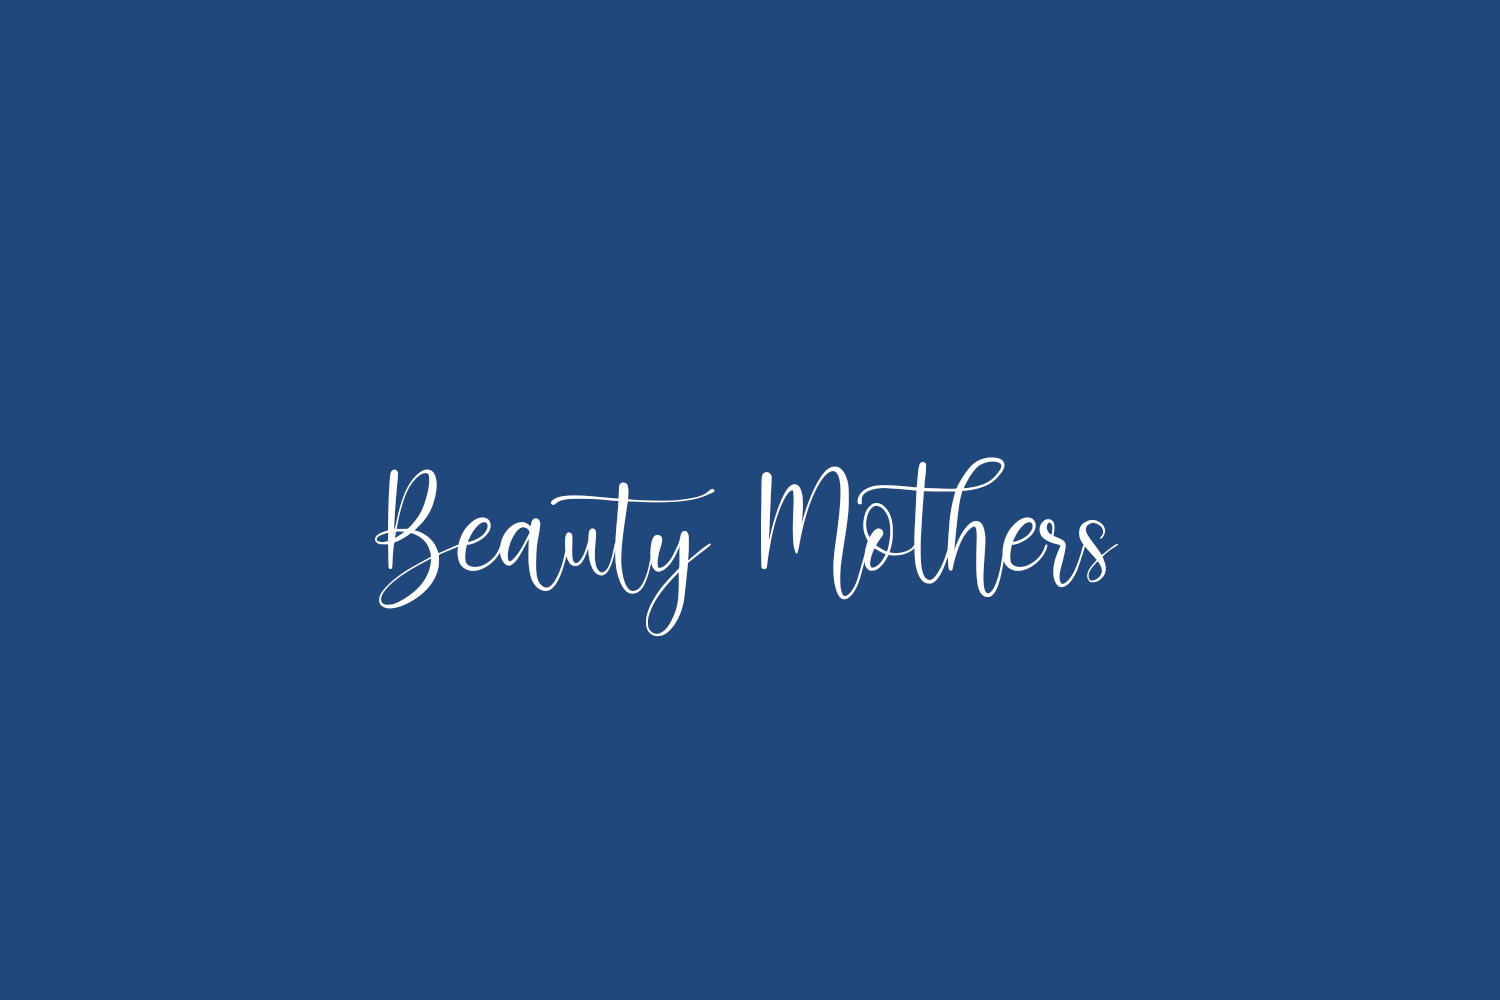 Beauty Mothers Free Font